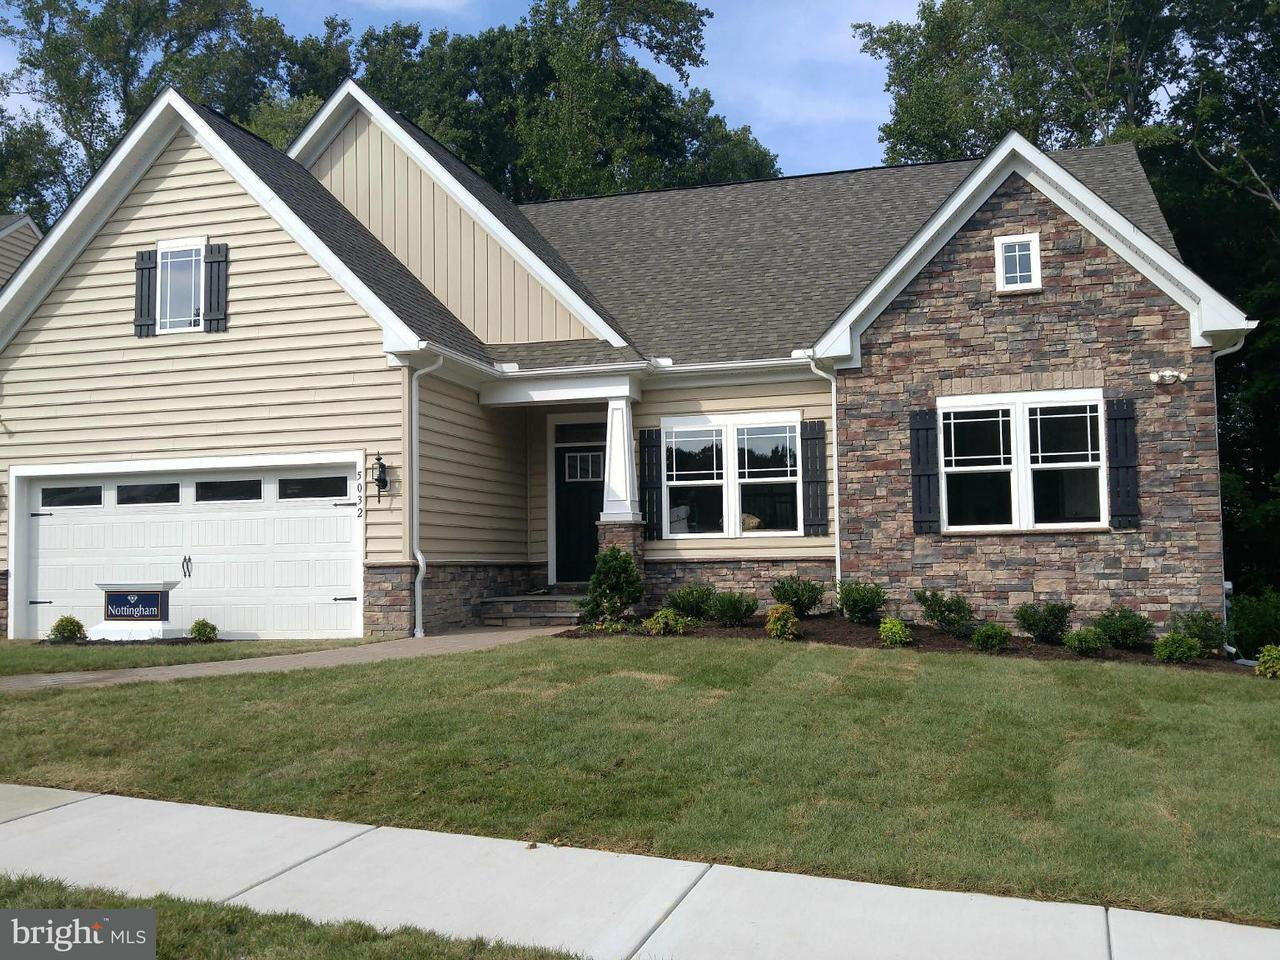 Single Family Home for Sale at 5032 Shirleybrook Avenue 5032 Shirleybrook Avenue Rosedale, Maryland 21237 United States